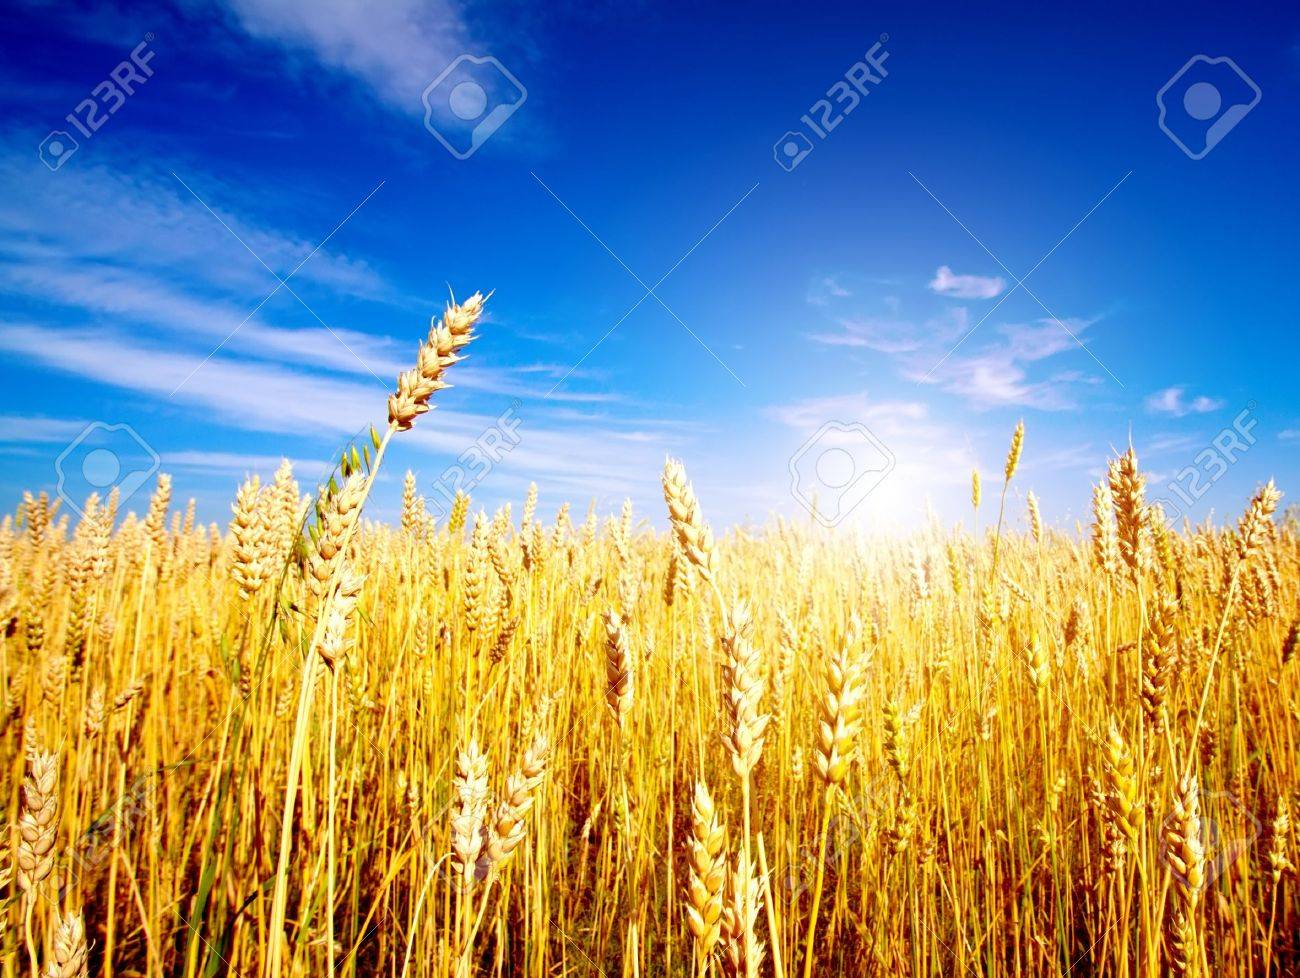 Golden wheat field with blue sky in background - 9088131